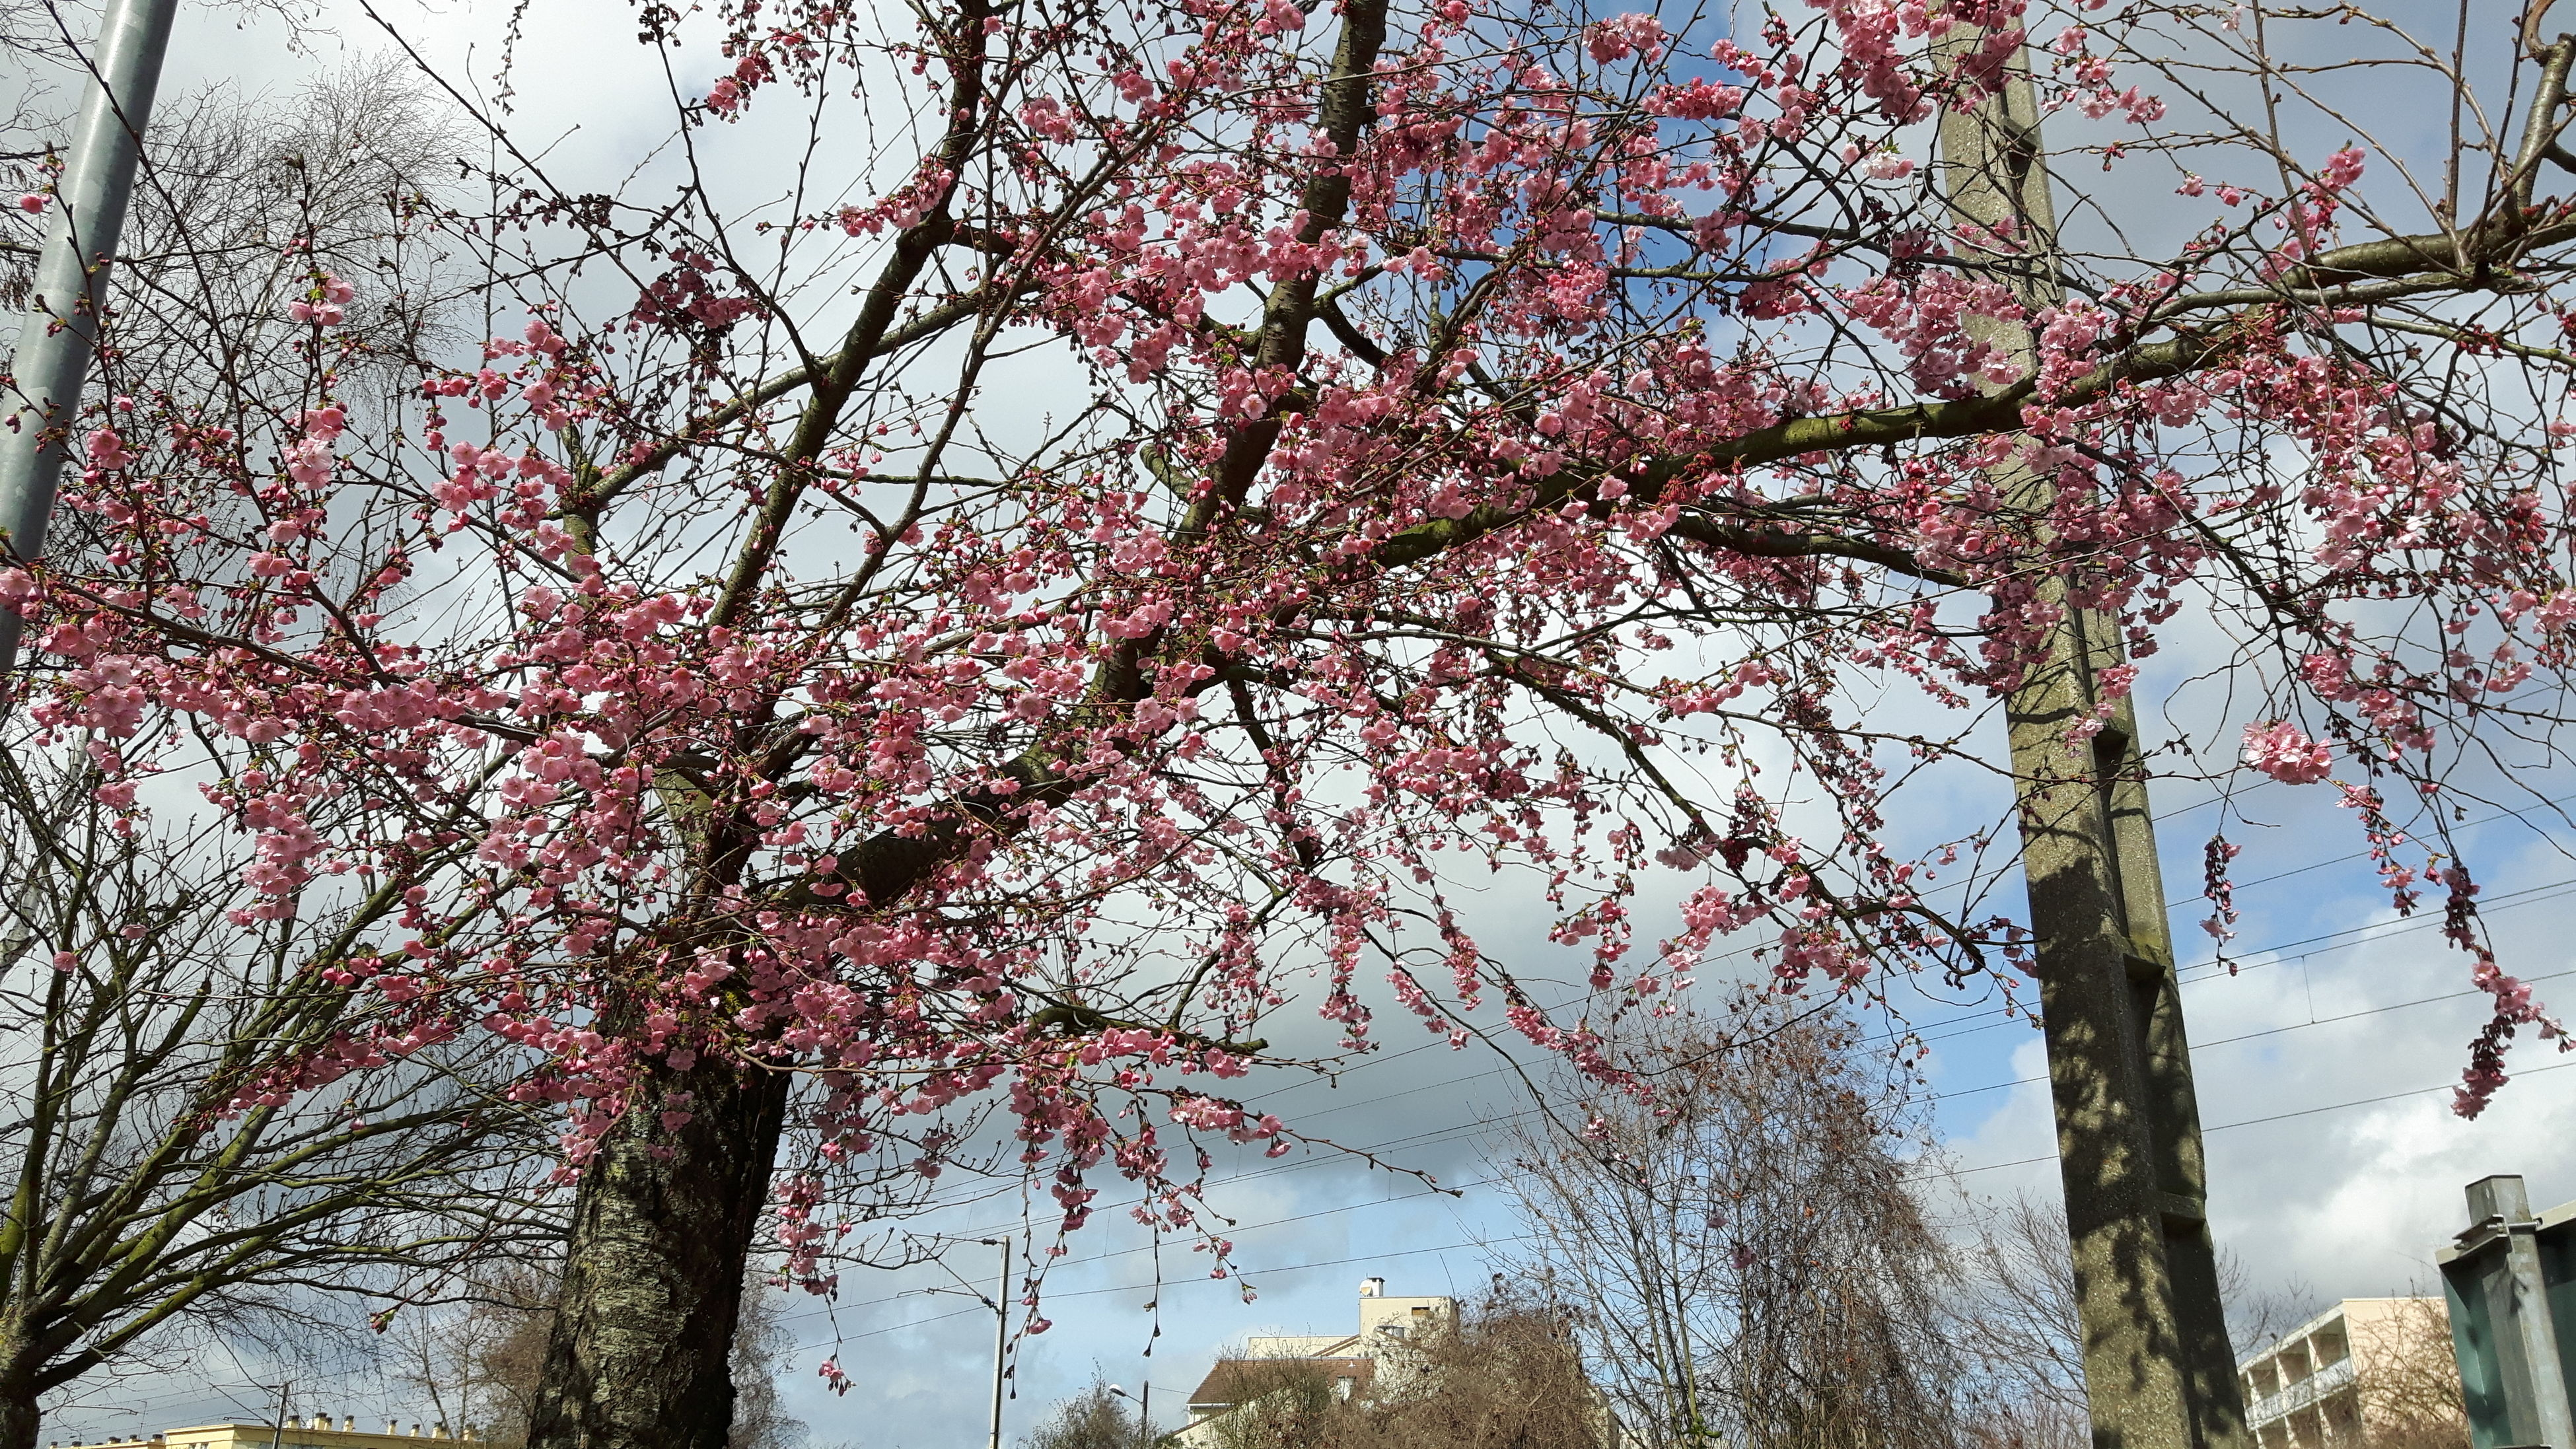 tree, branch, low angle view, growth, flower, built structure, architecture, nature, sky, building exterior, beauty in nature, pink color, day, blossom, freshness, tree trunk, no people, outdoors, cherry blossom, fragility